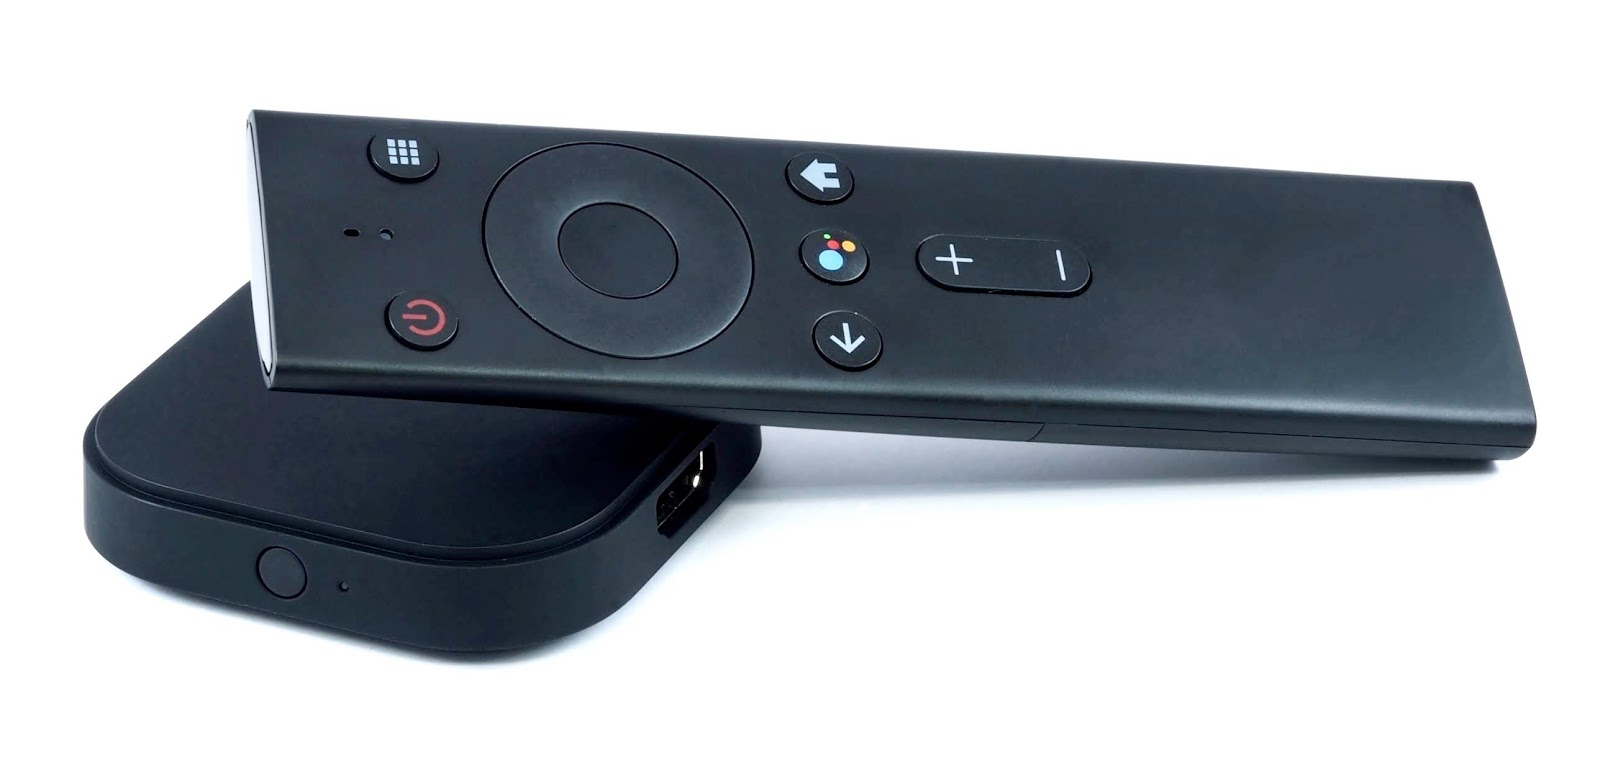 ADT-3 Android TV Box